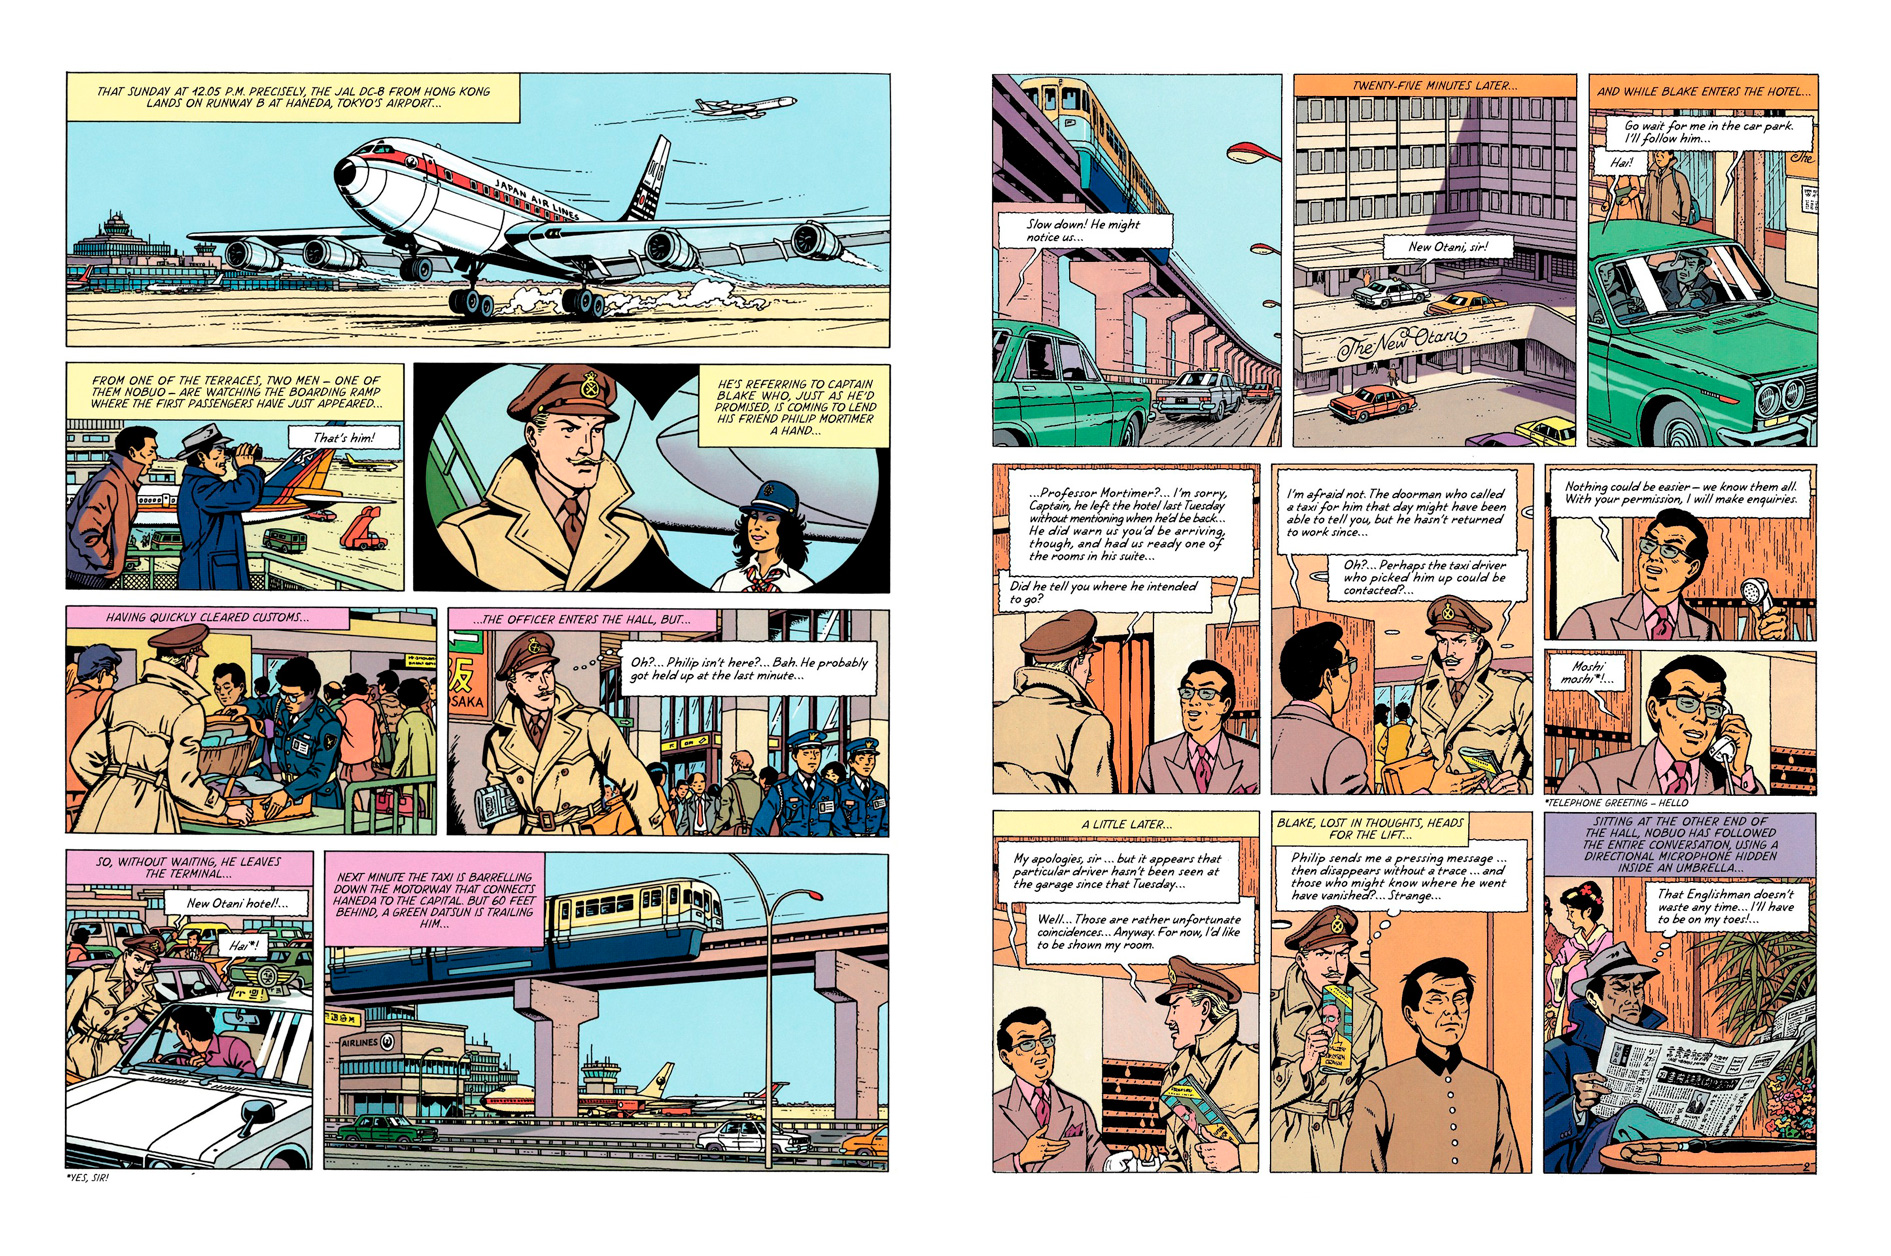 Blake and Mortimer: Professor Satō's Three Formulae